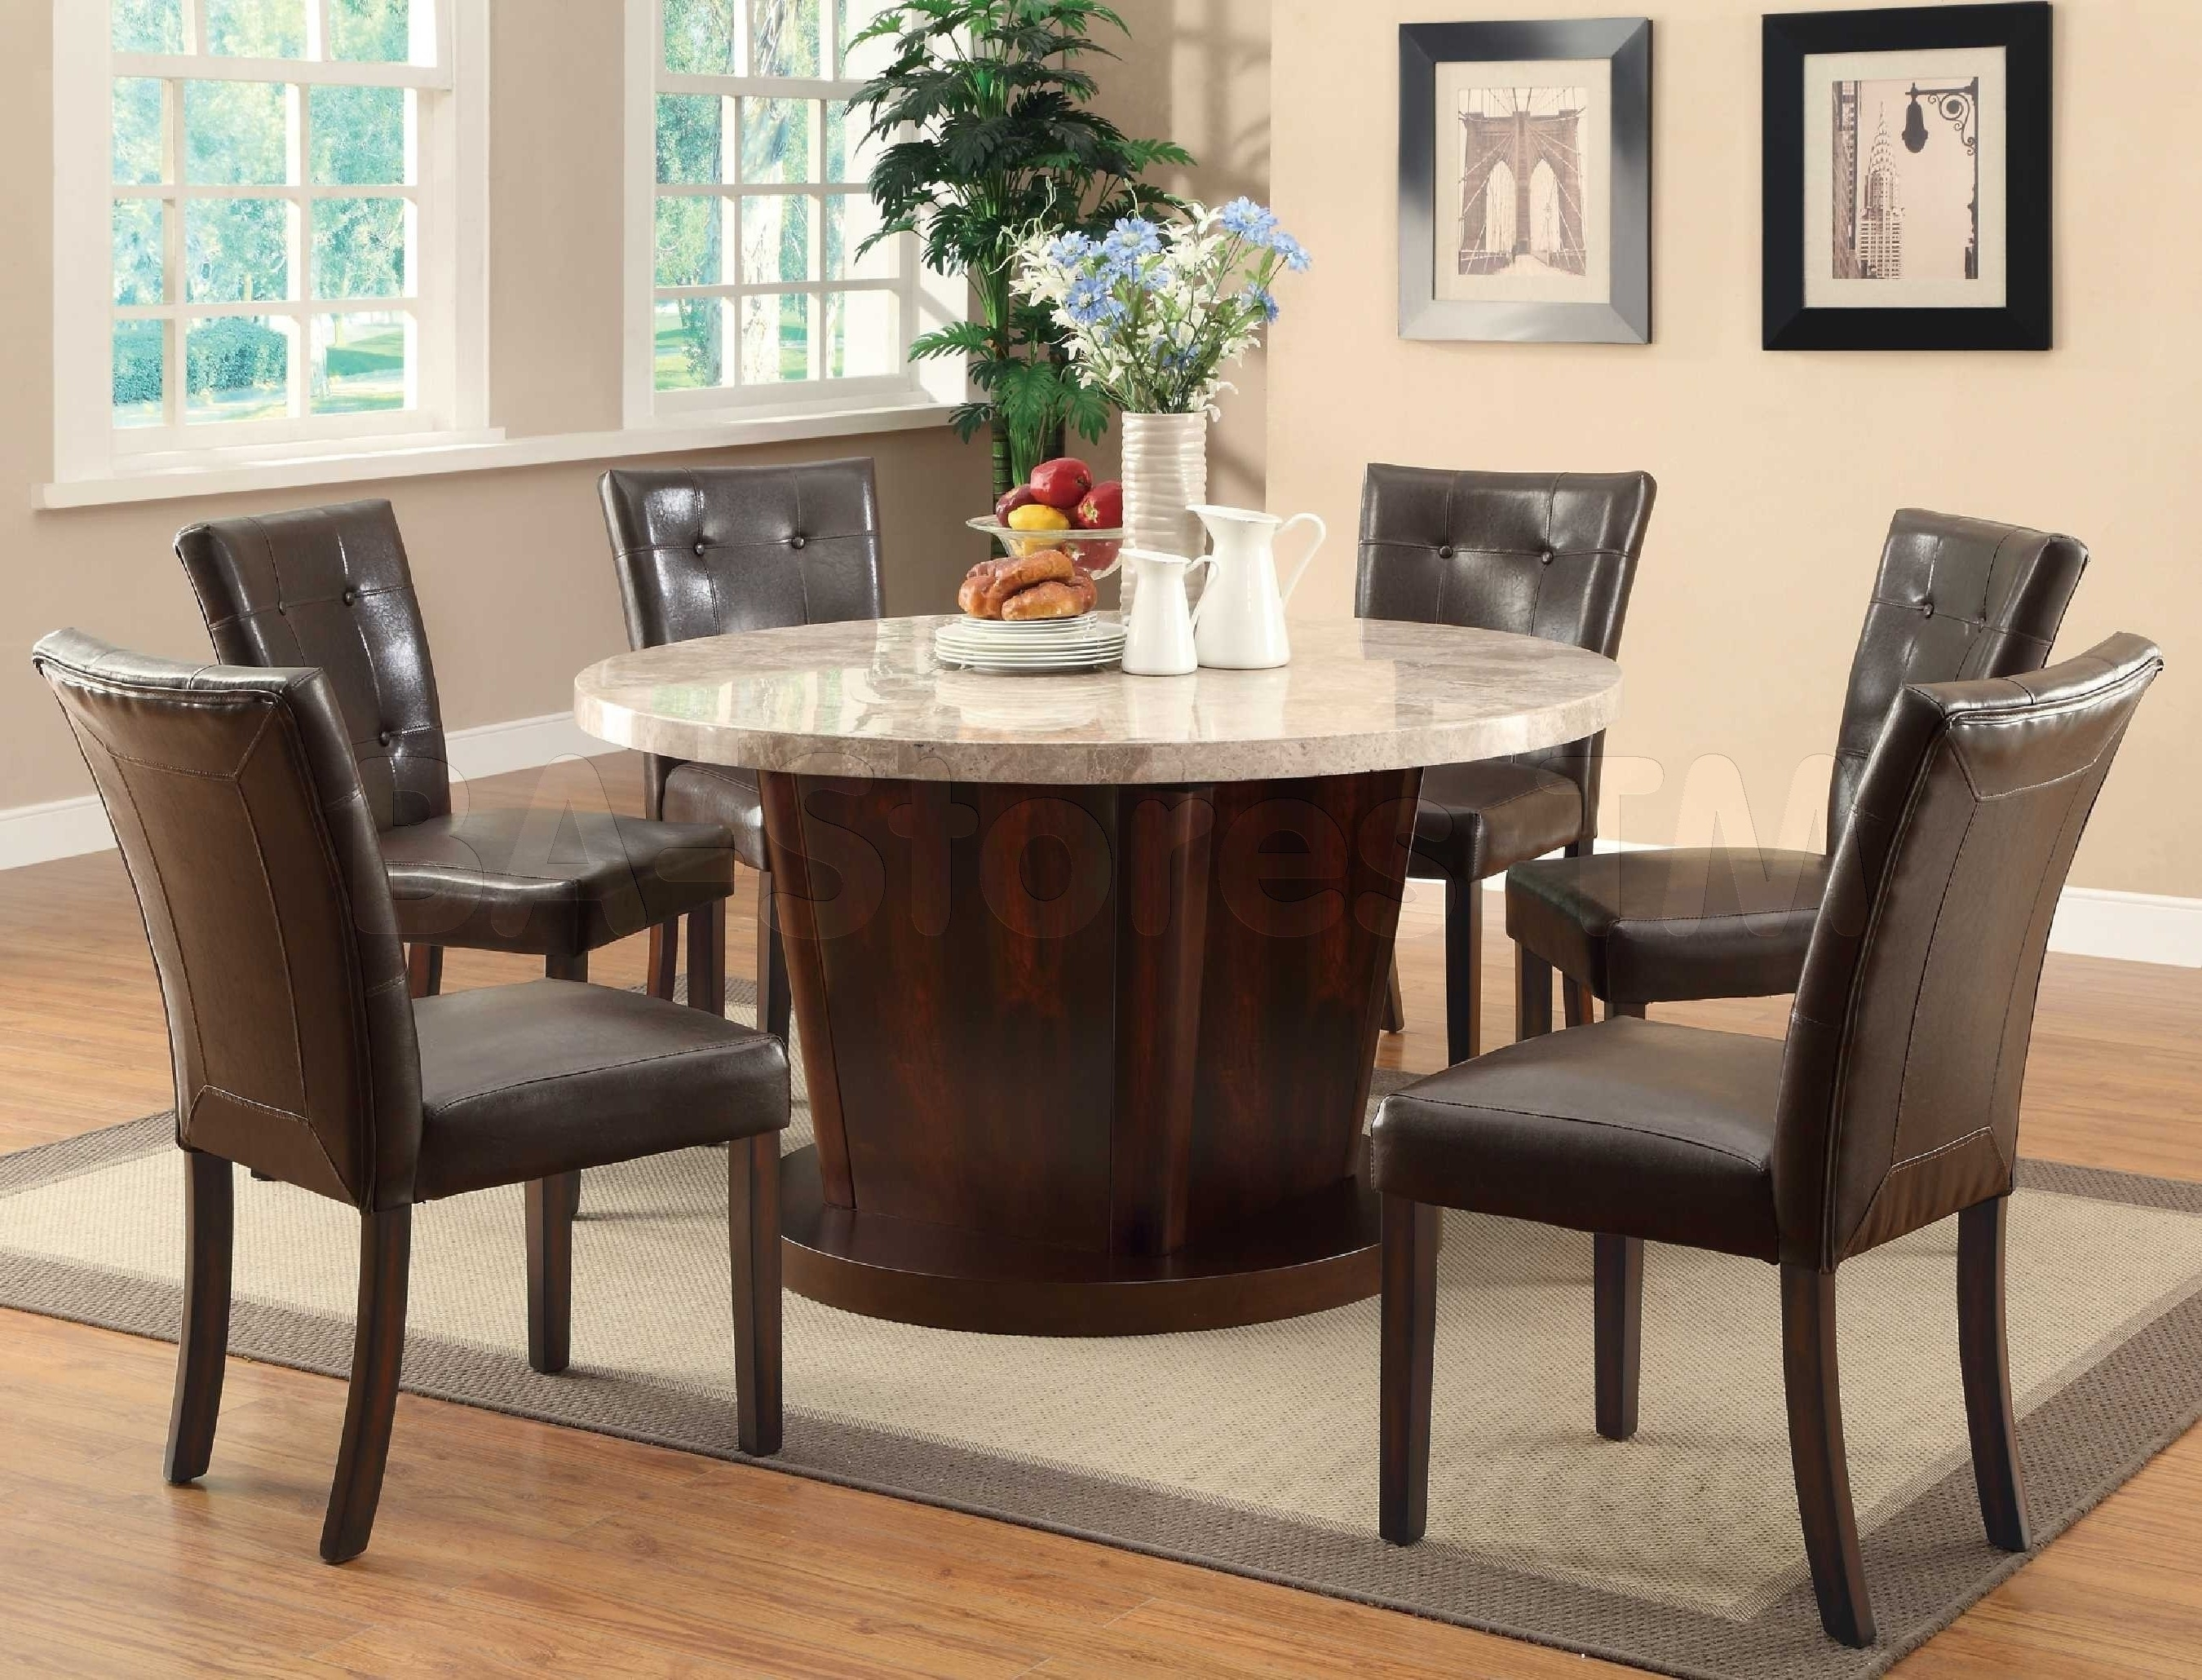 Dining Table And 10 Chairs With Regard To Newest 10 Seater Dining Table And Chairs Elegant Modern Dining Room Tables (Gallery 21 of 25)